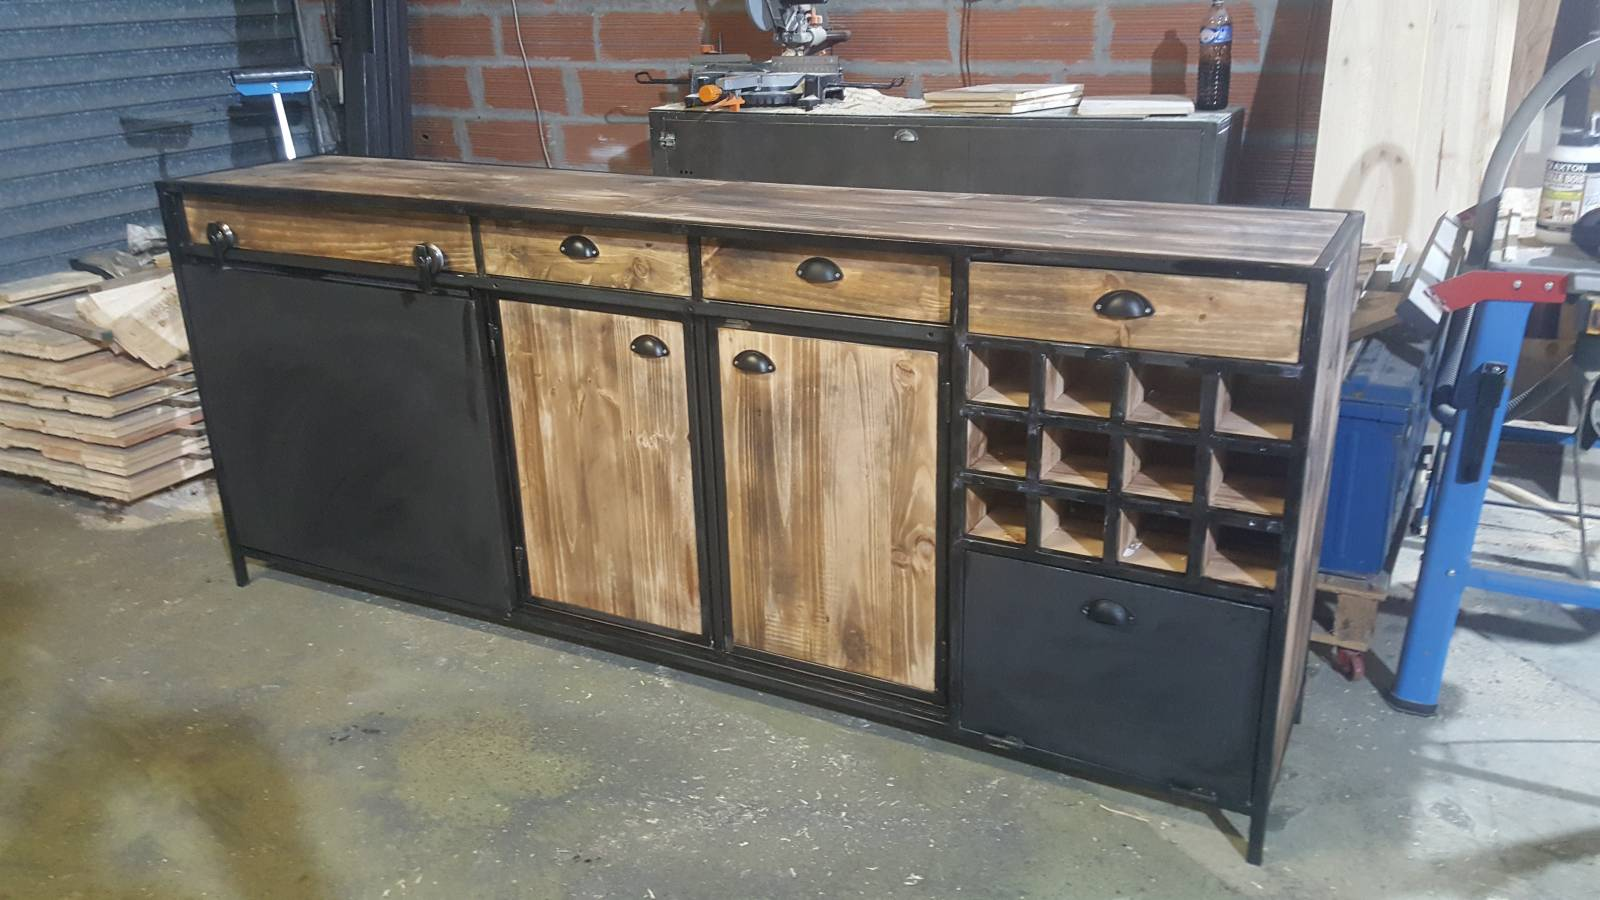 buffet industriel avec porte coulissante sur bordeaux fabrication de mobilier bois et m tal en. Black Bedroom Furniture Sets. Home Design Ideas